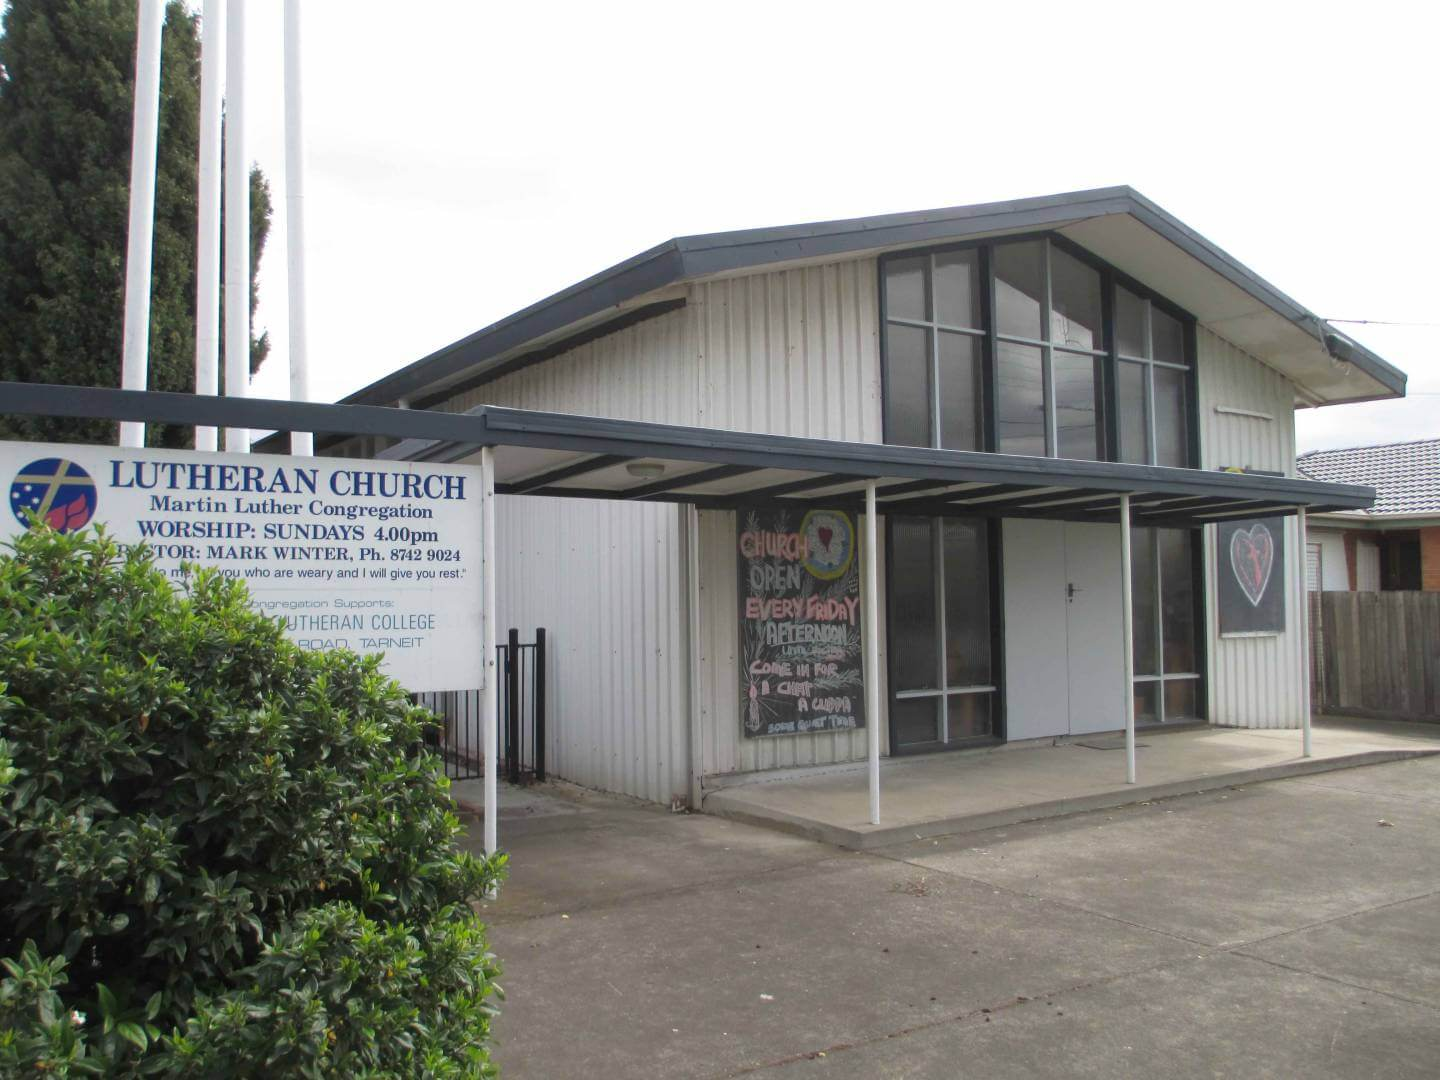 Lutheran Church (Martin Luther Congregation)